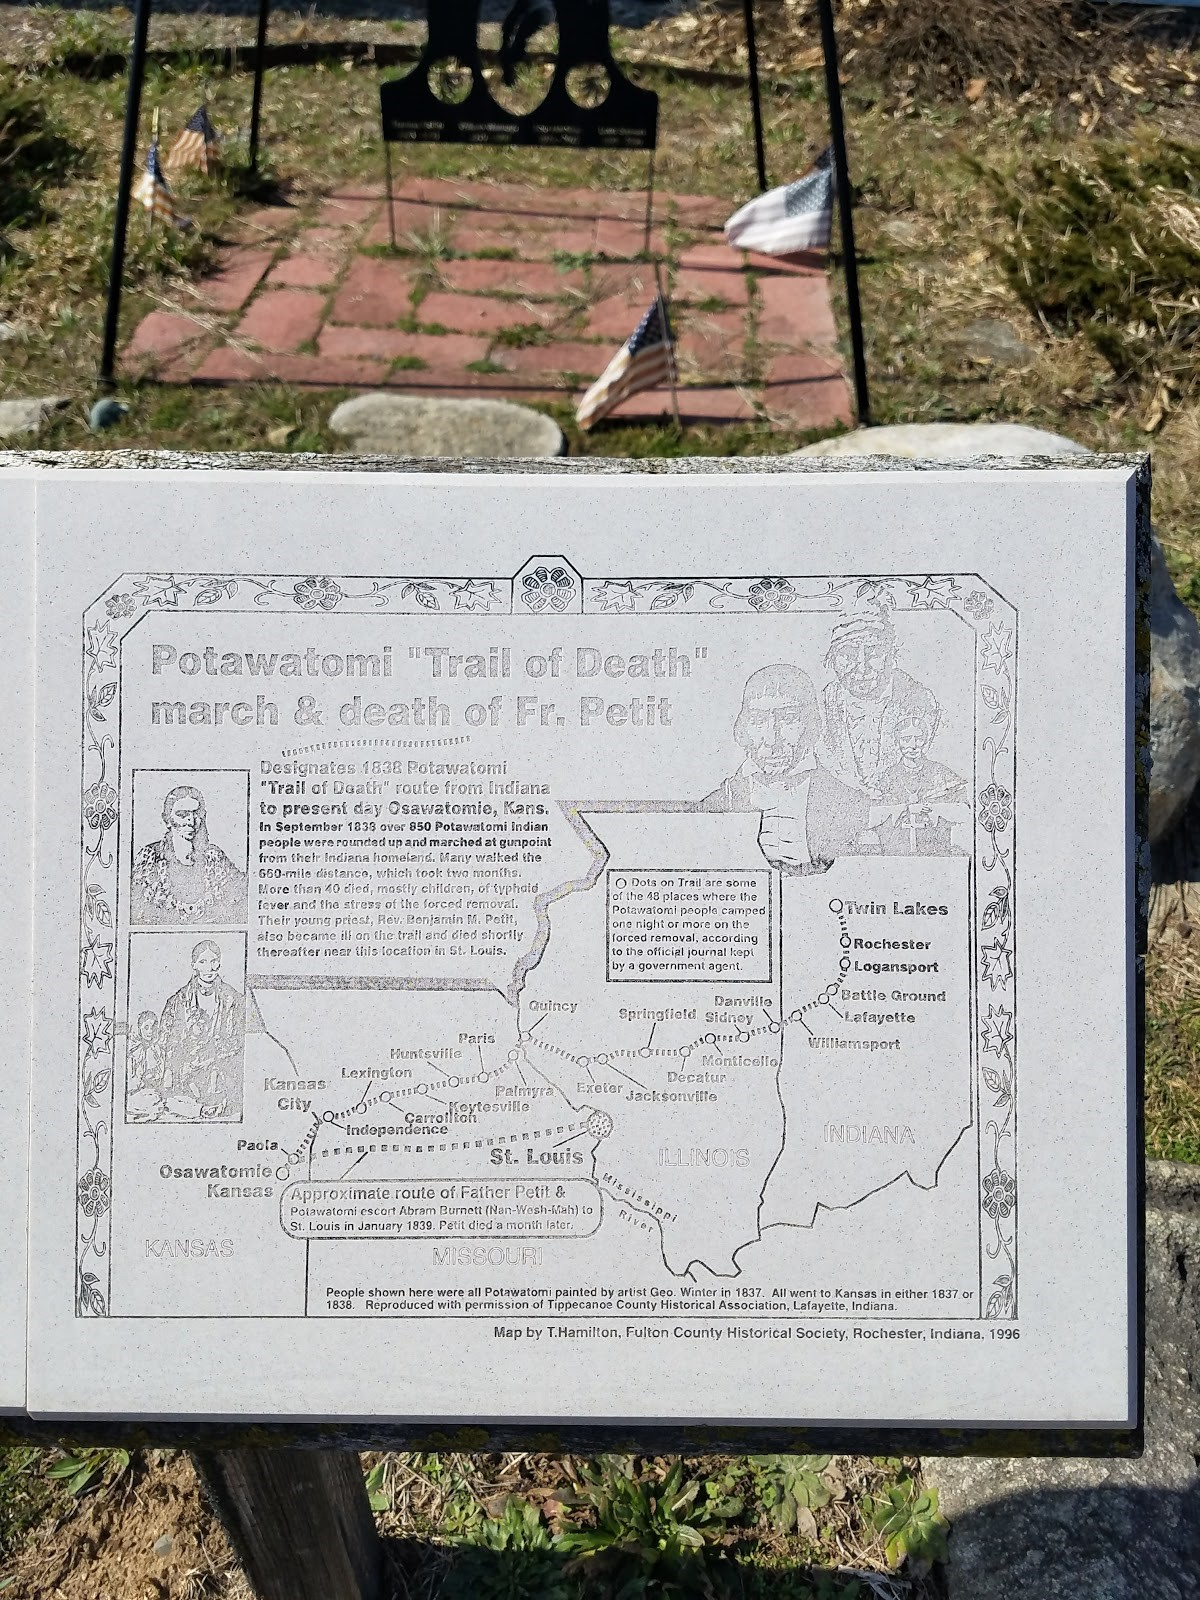 This stone plaque provides a map which overviews the Trail of Death from start to end.